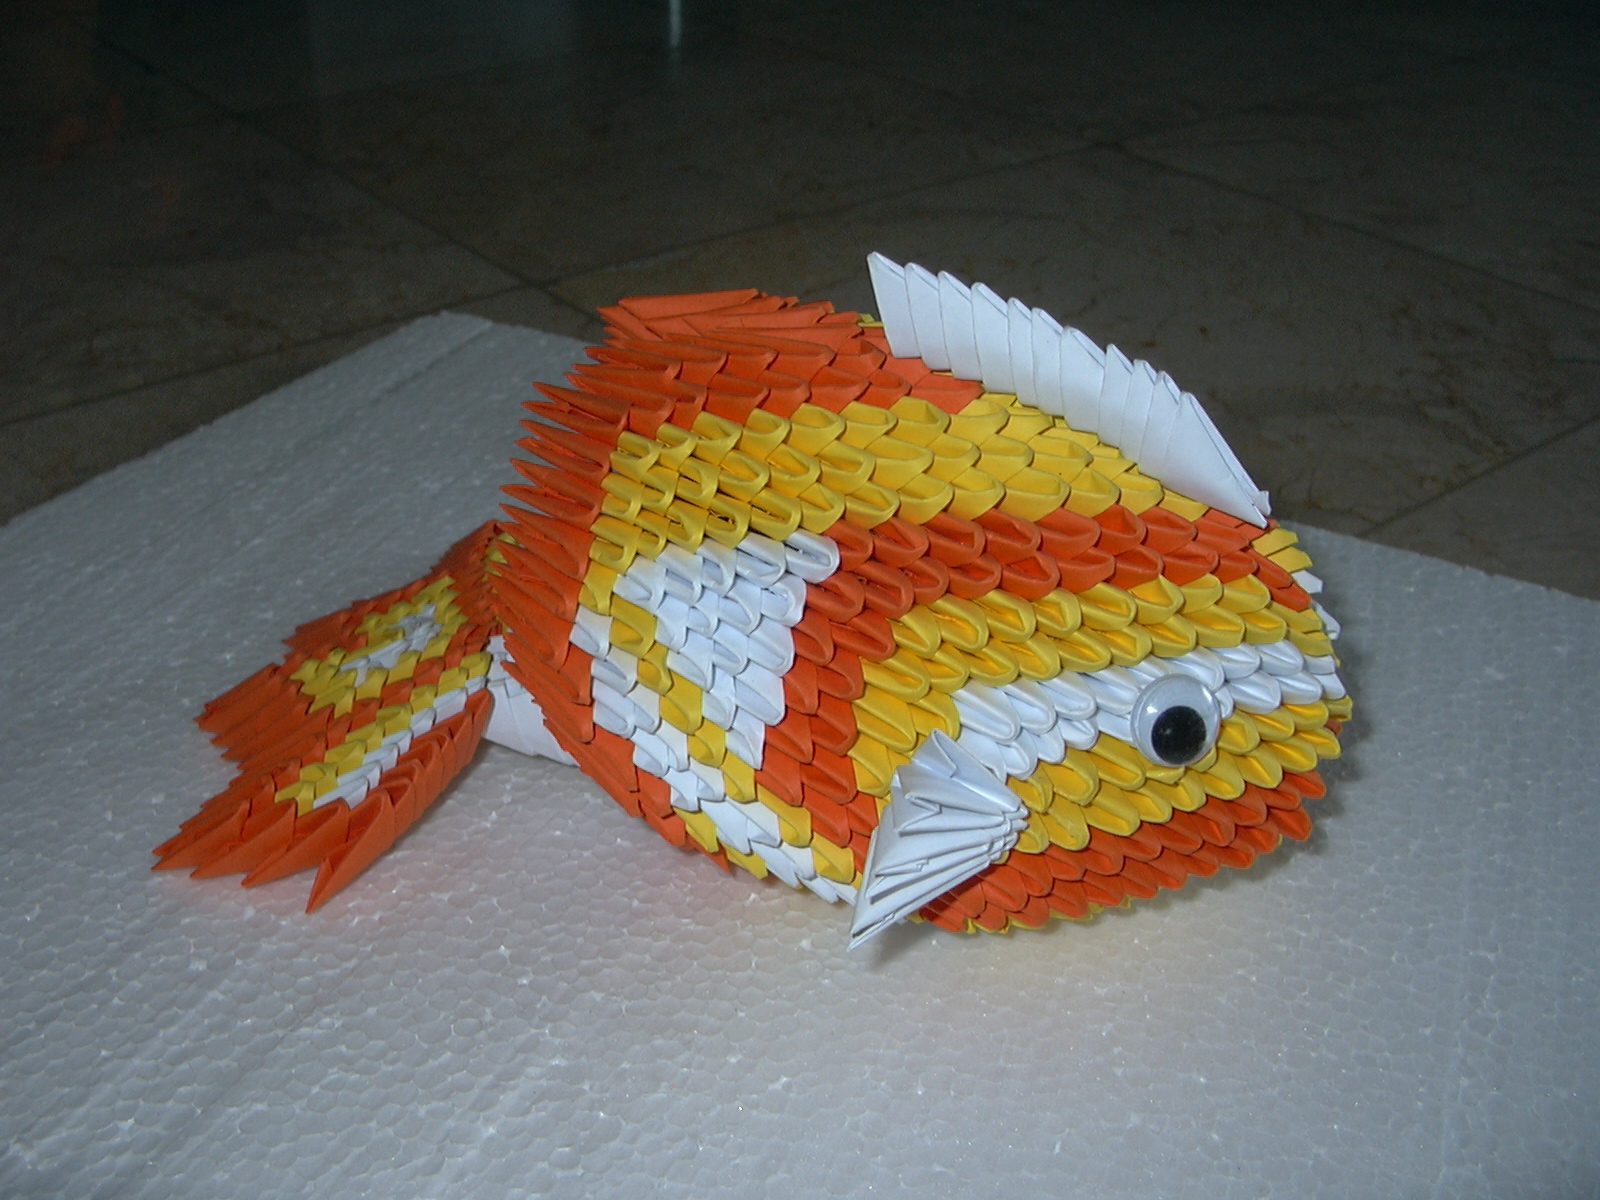 ICHANOKO 3D ORIGAMI INDONESIA: Model 3d origami - ANIMALS - photo#37